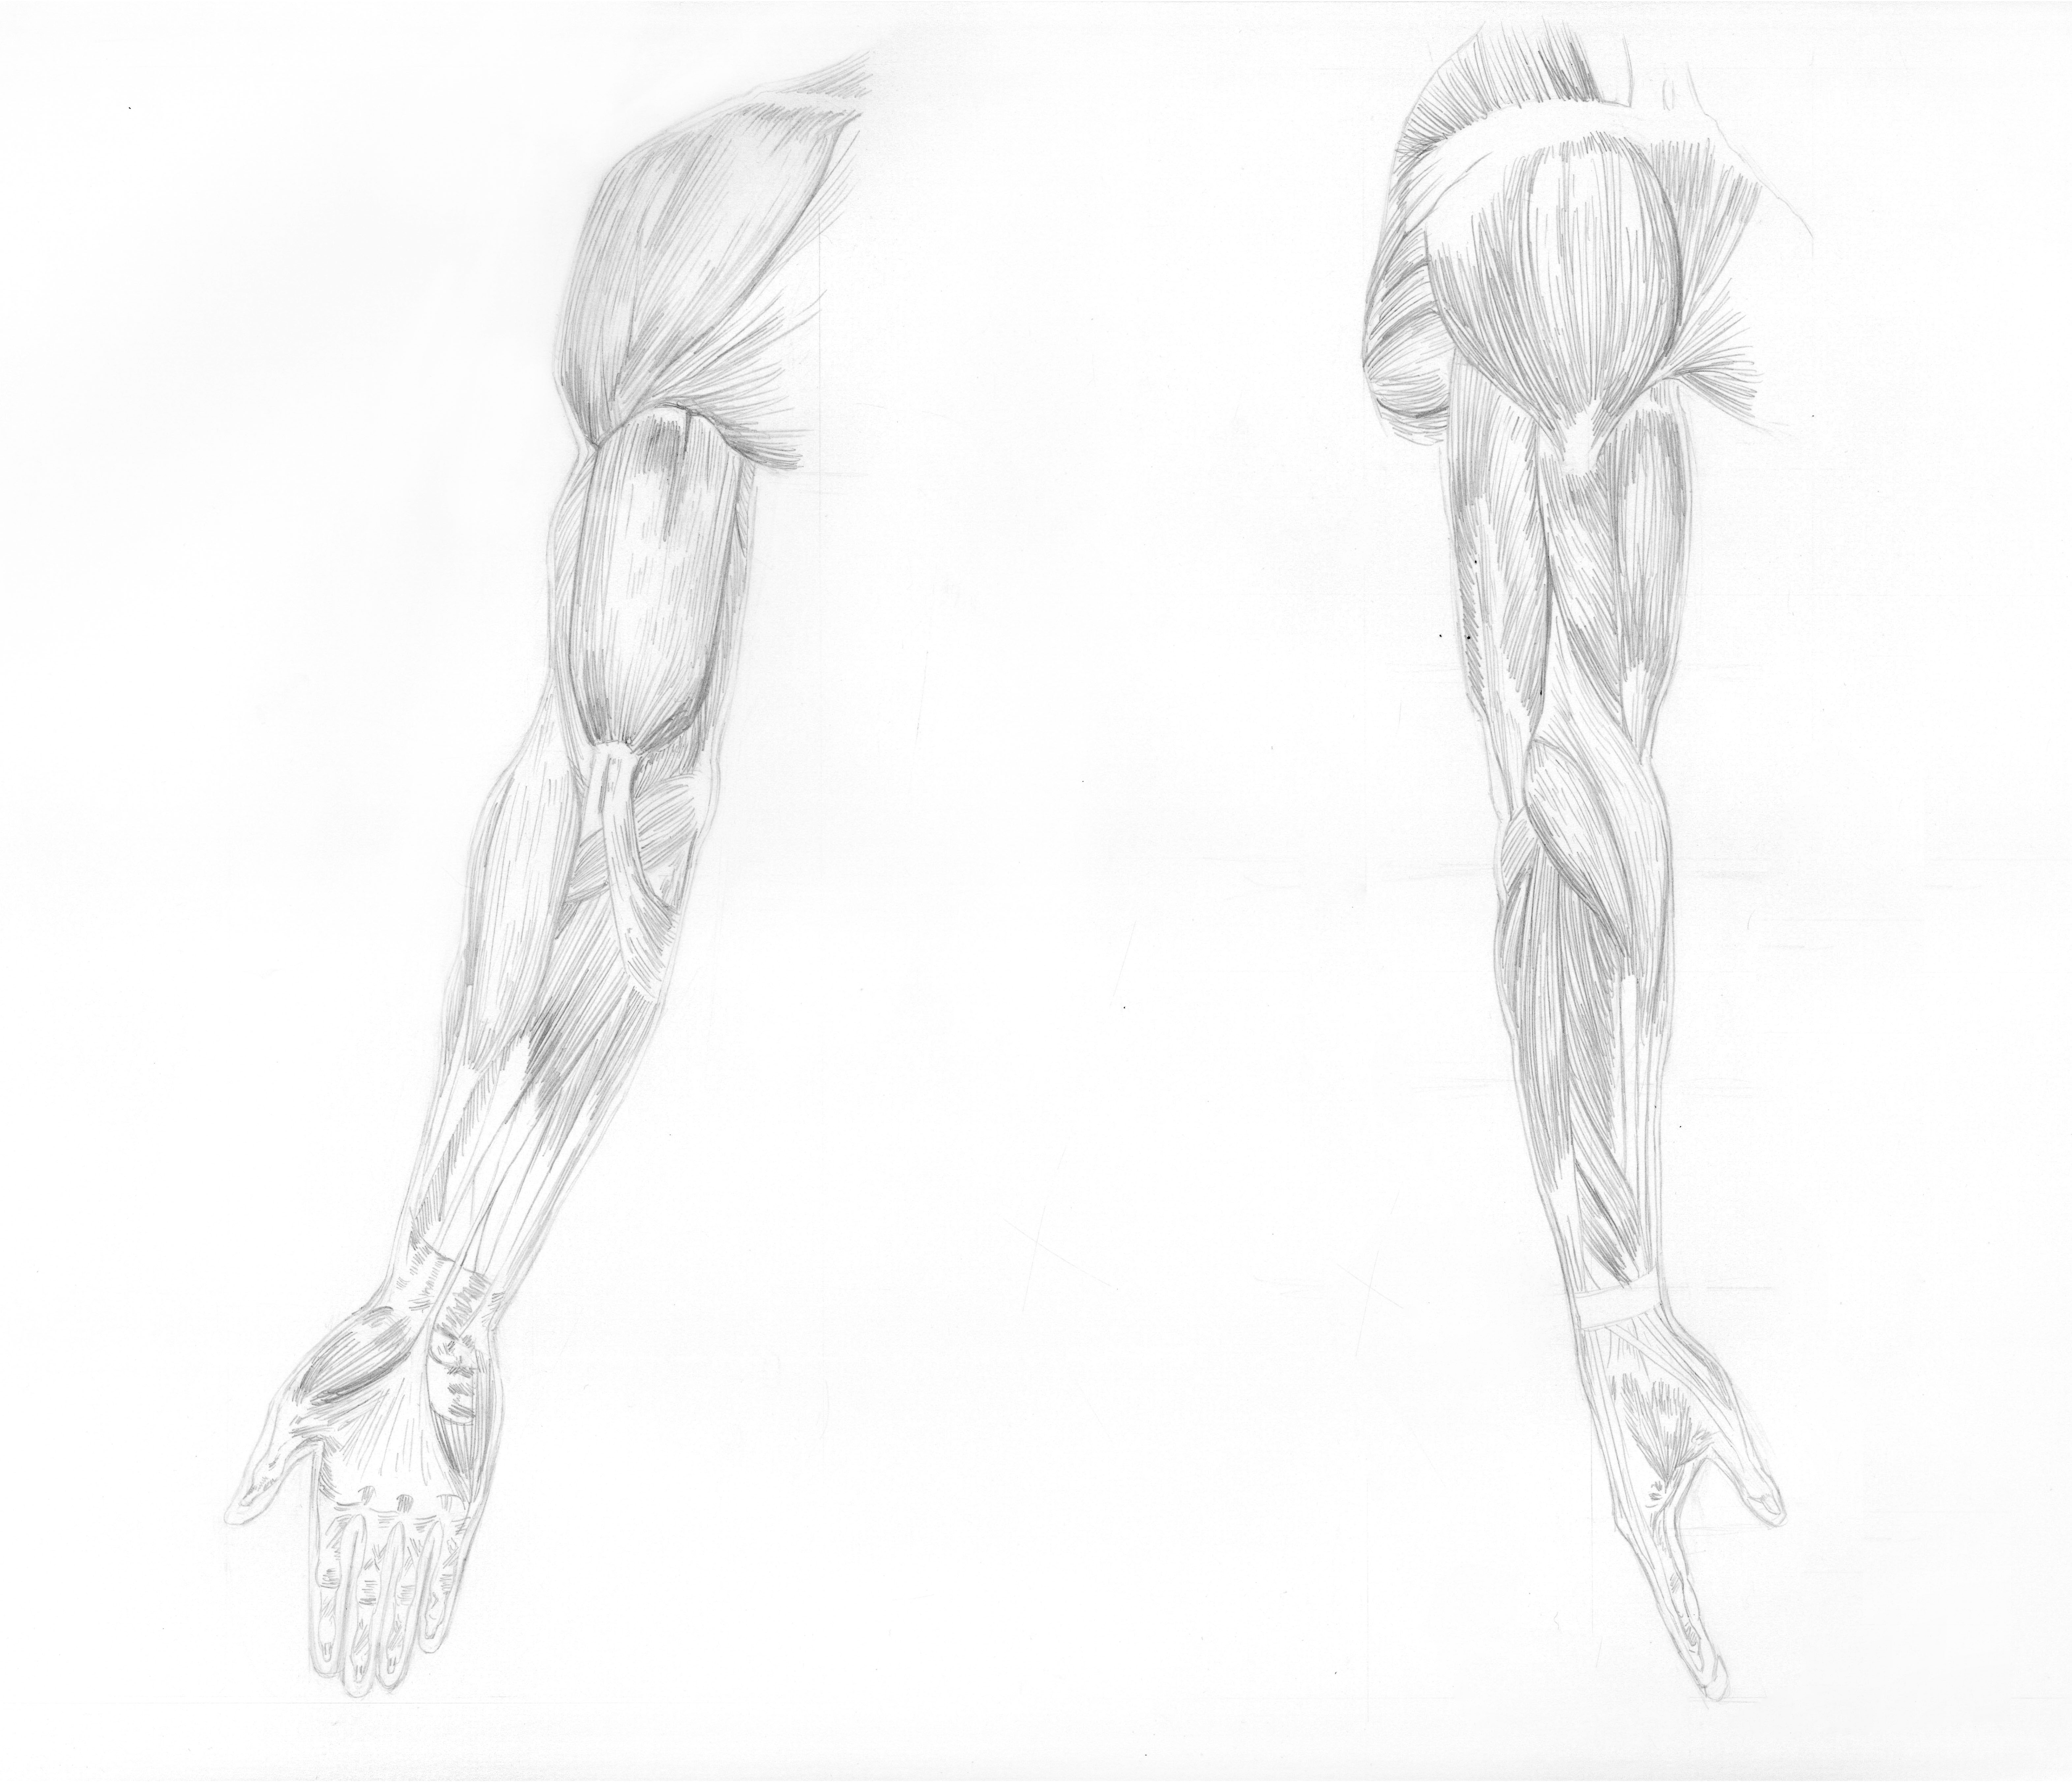 muscle arm study